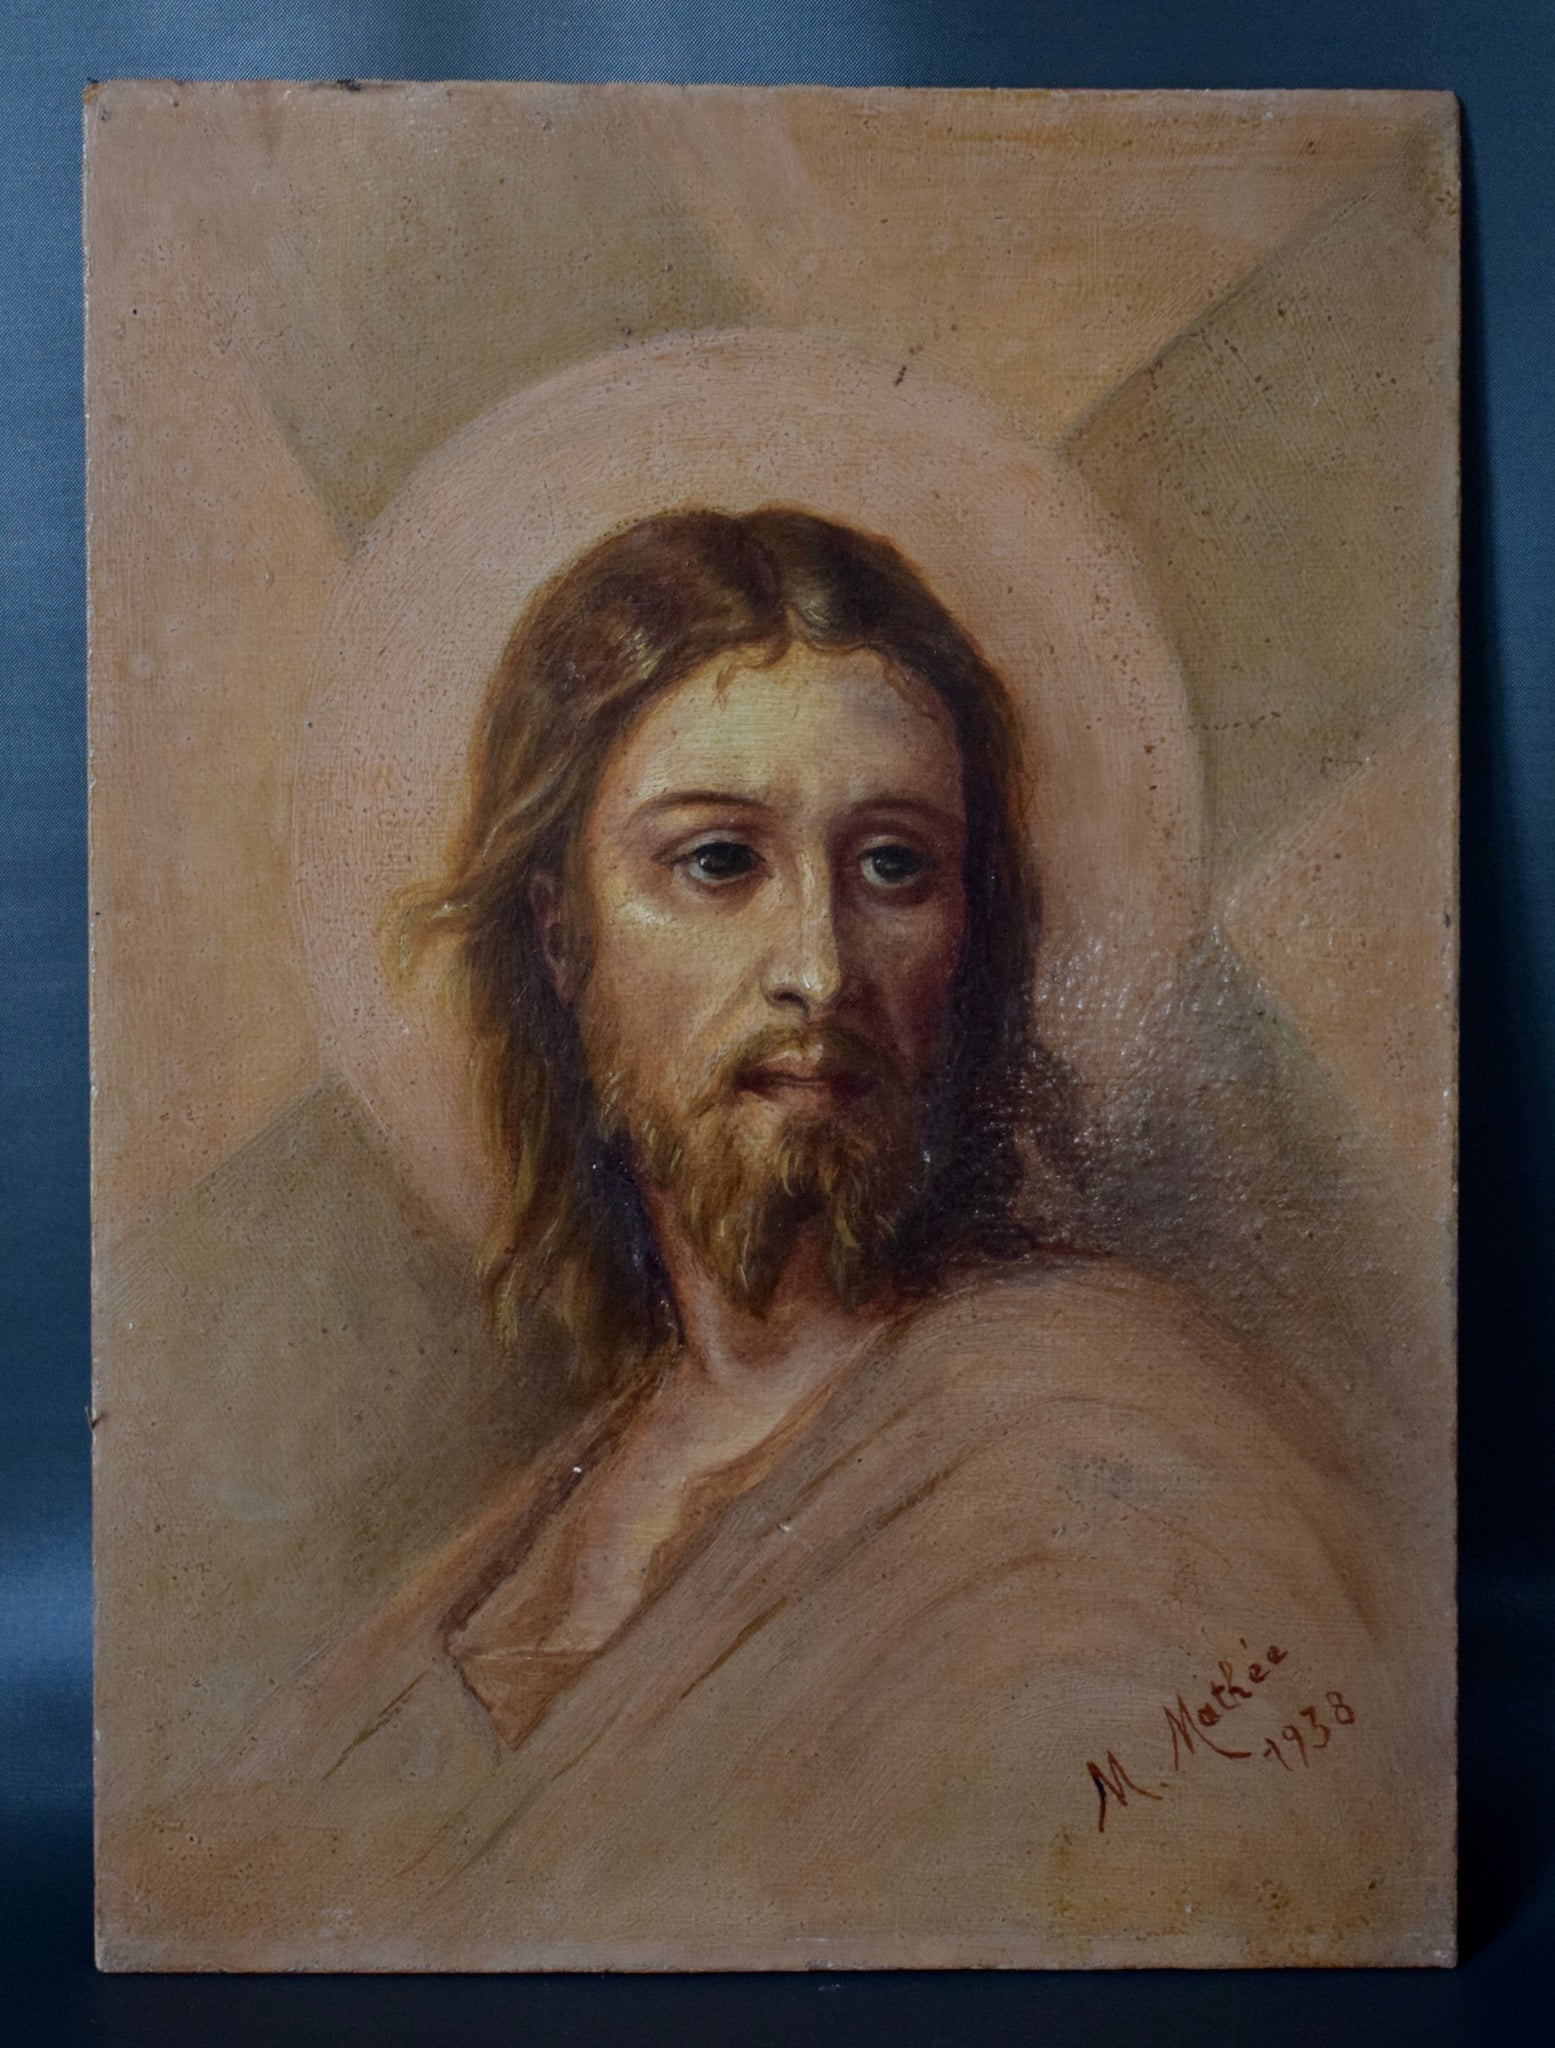 Antique French Religious Oil Painting After Lazerges of Jesus Christ Portrait Jesus Defying The Crowd Dated 1938 Signed